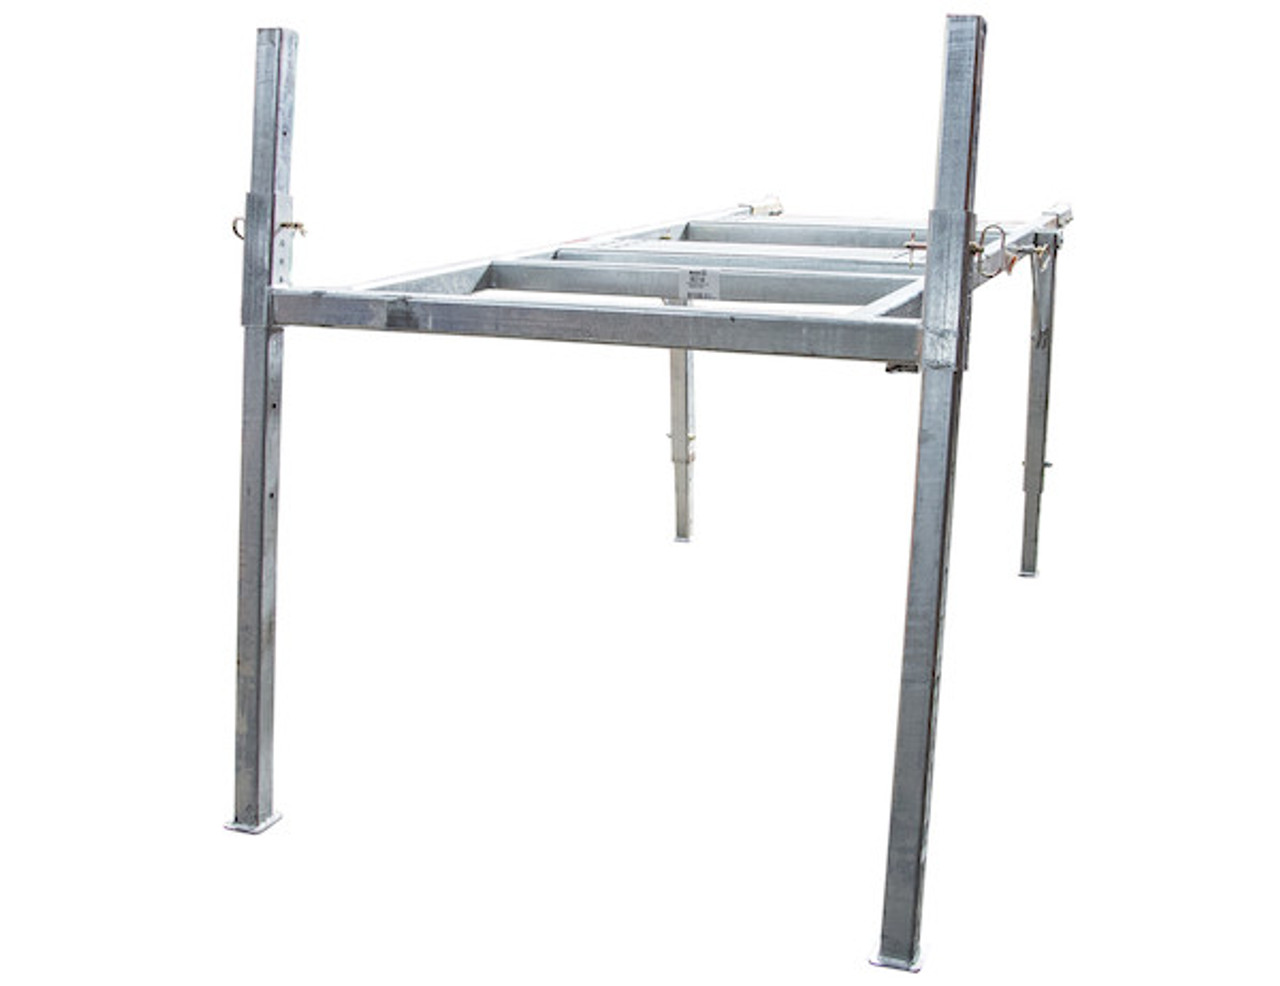 BUYERS 3037295 9-10 Foot Mid-Size Hot-Dipped Galvanized Spreader Stand for SaltDogg Spreader 1